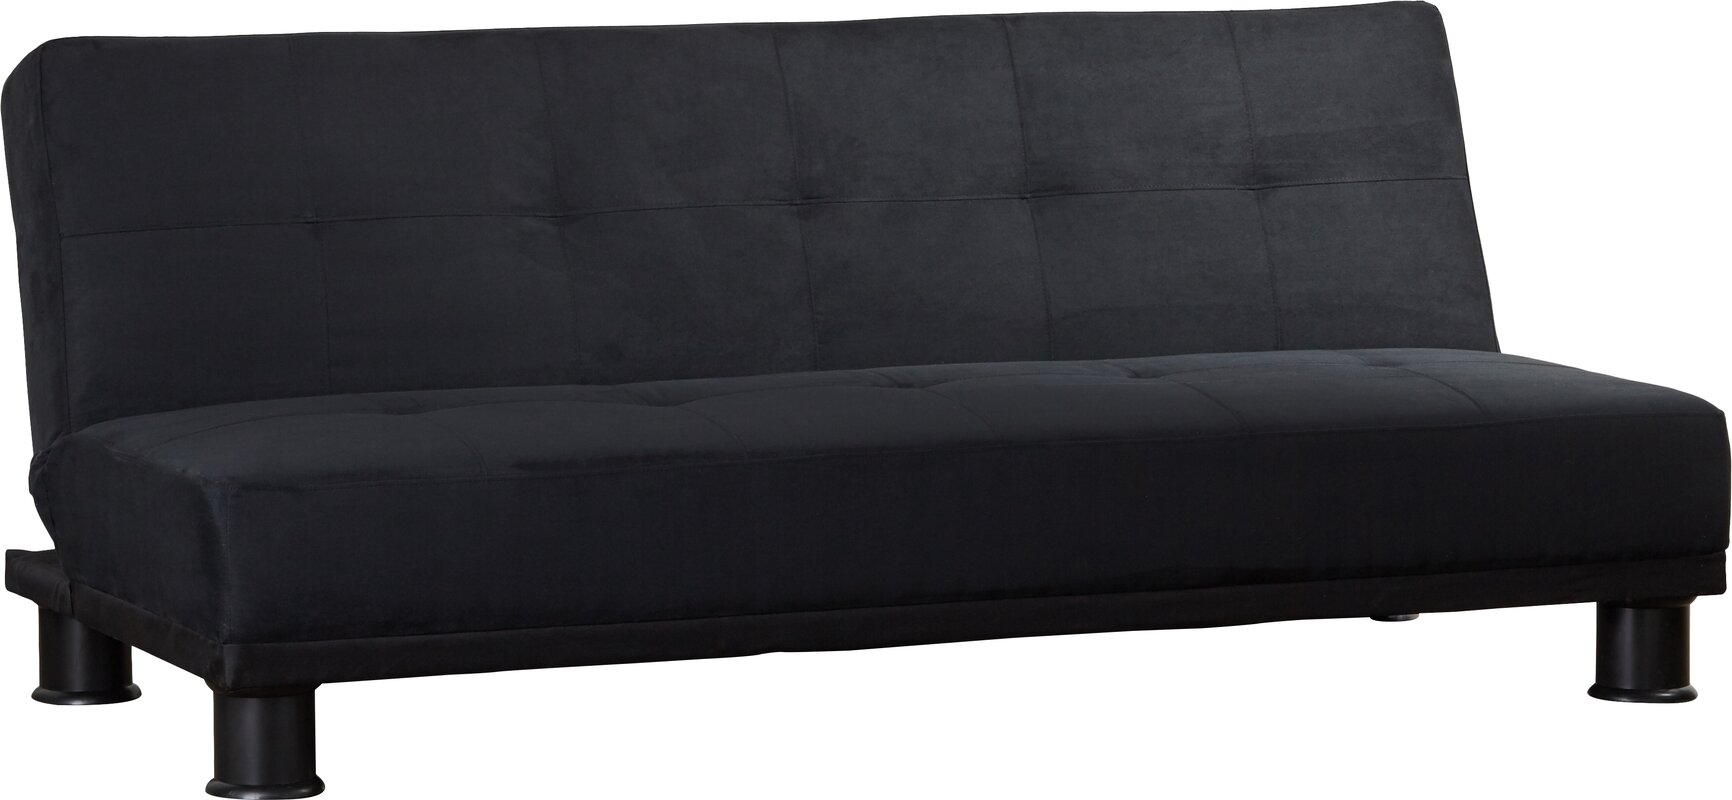 sofa beds with good mattress 3 seater clic clac sofa bed. Black Bedroom Furniture Sets. Home Design Ideas